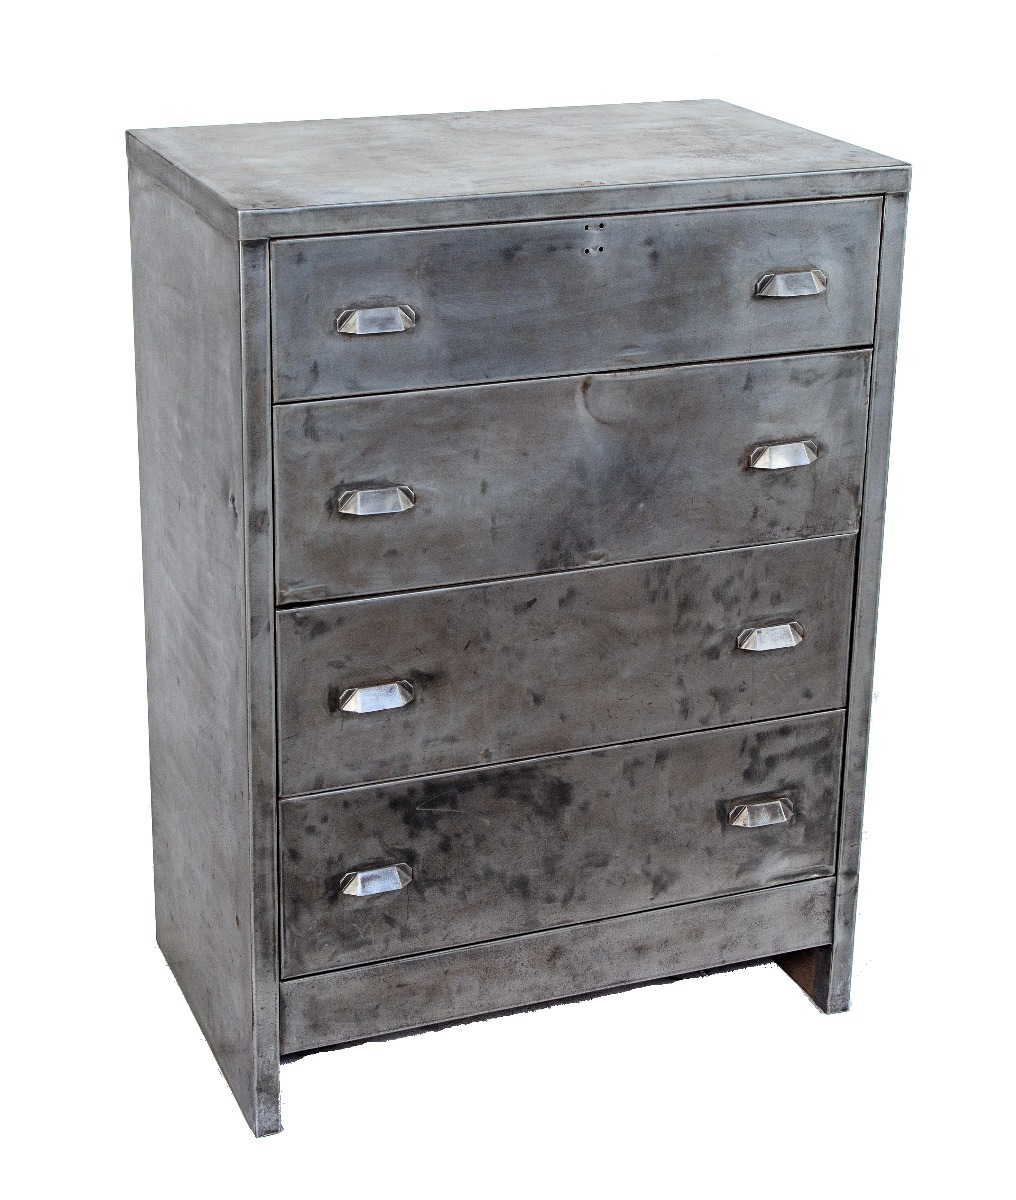 Refinished Antique American Cold Rolled Steel Art Metal Furniture Dresser With Unusual Drawer Pulls